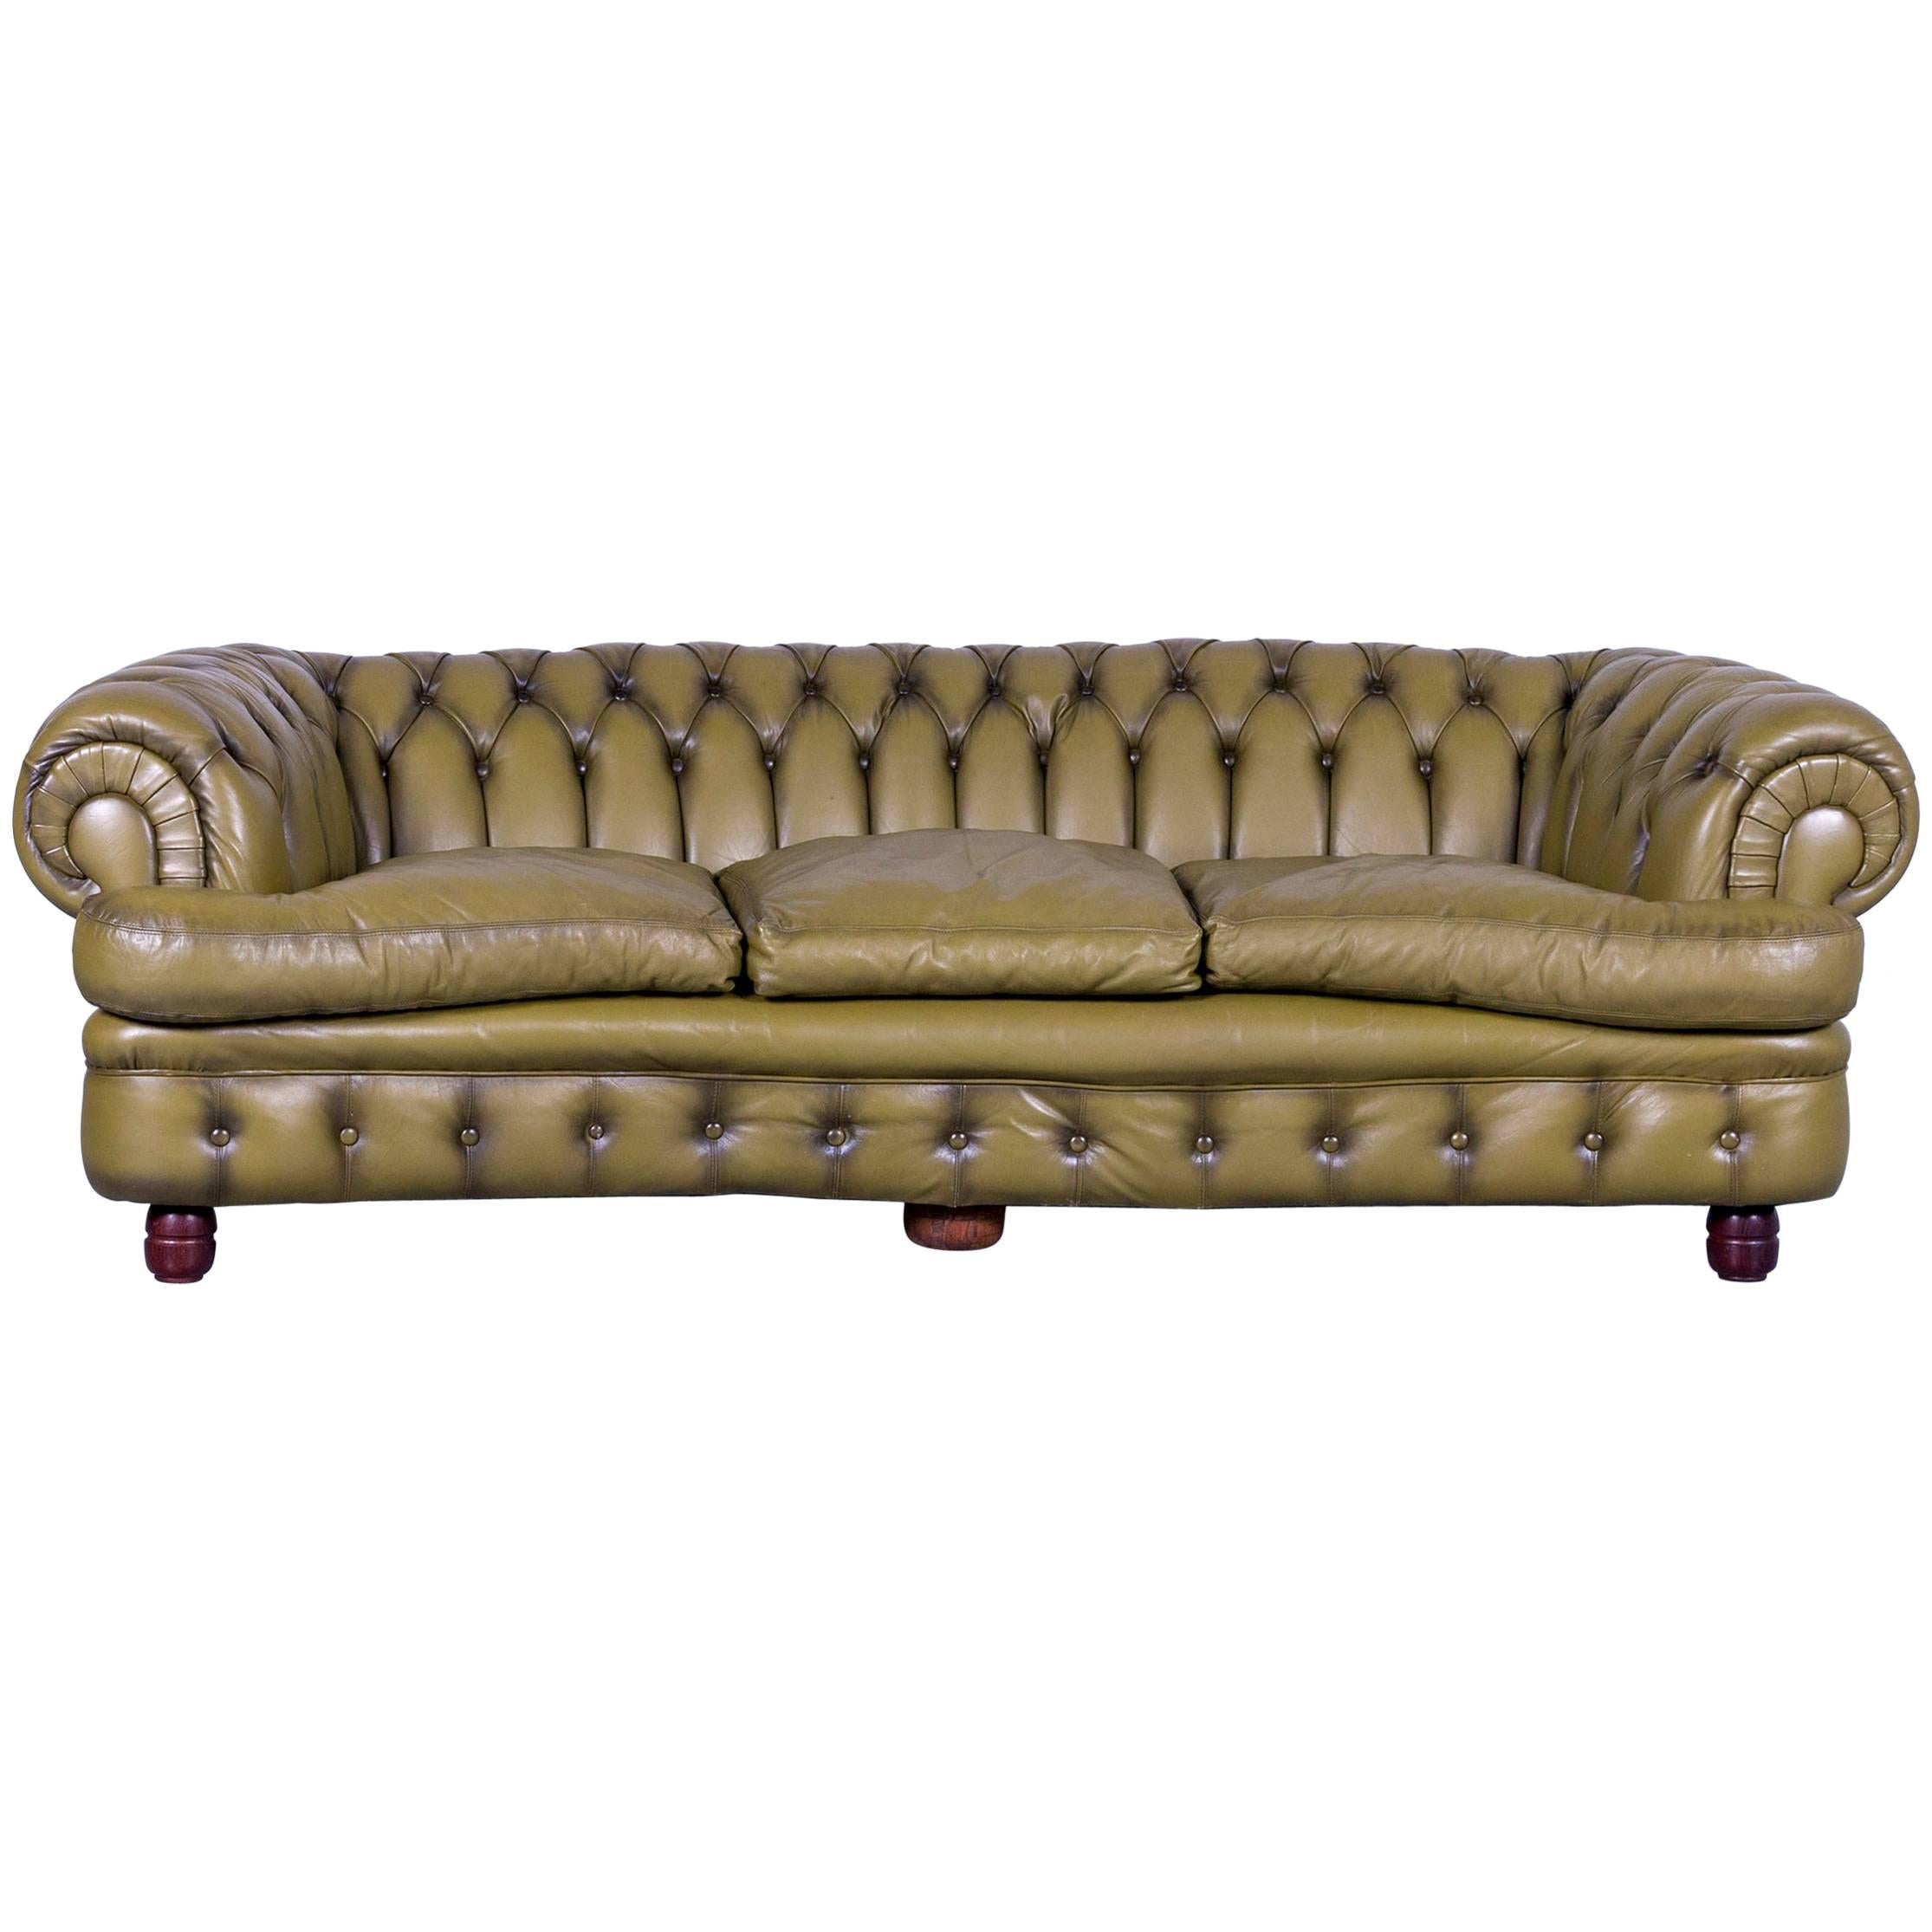 Retro Sofa Leather Chesterfield Sofa Green Three Seat Leather Couch Vintage Retro Curved